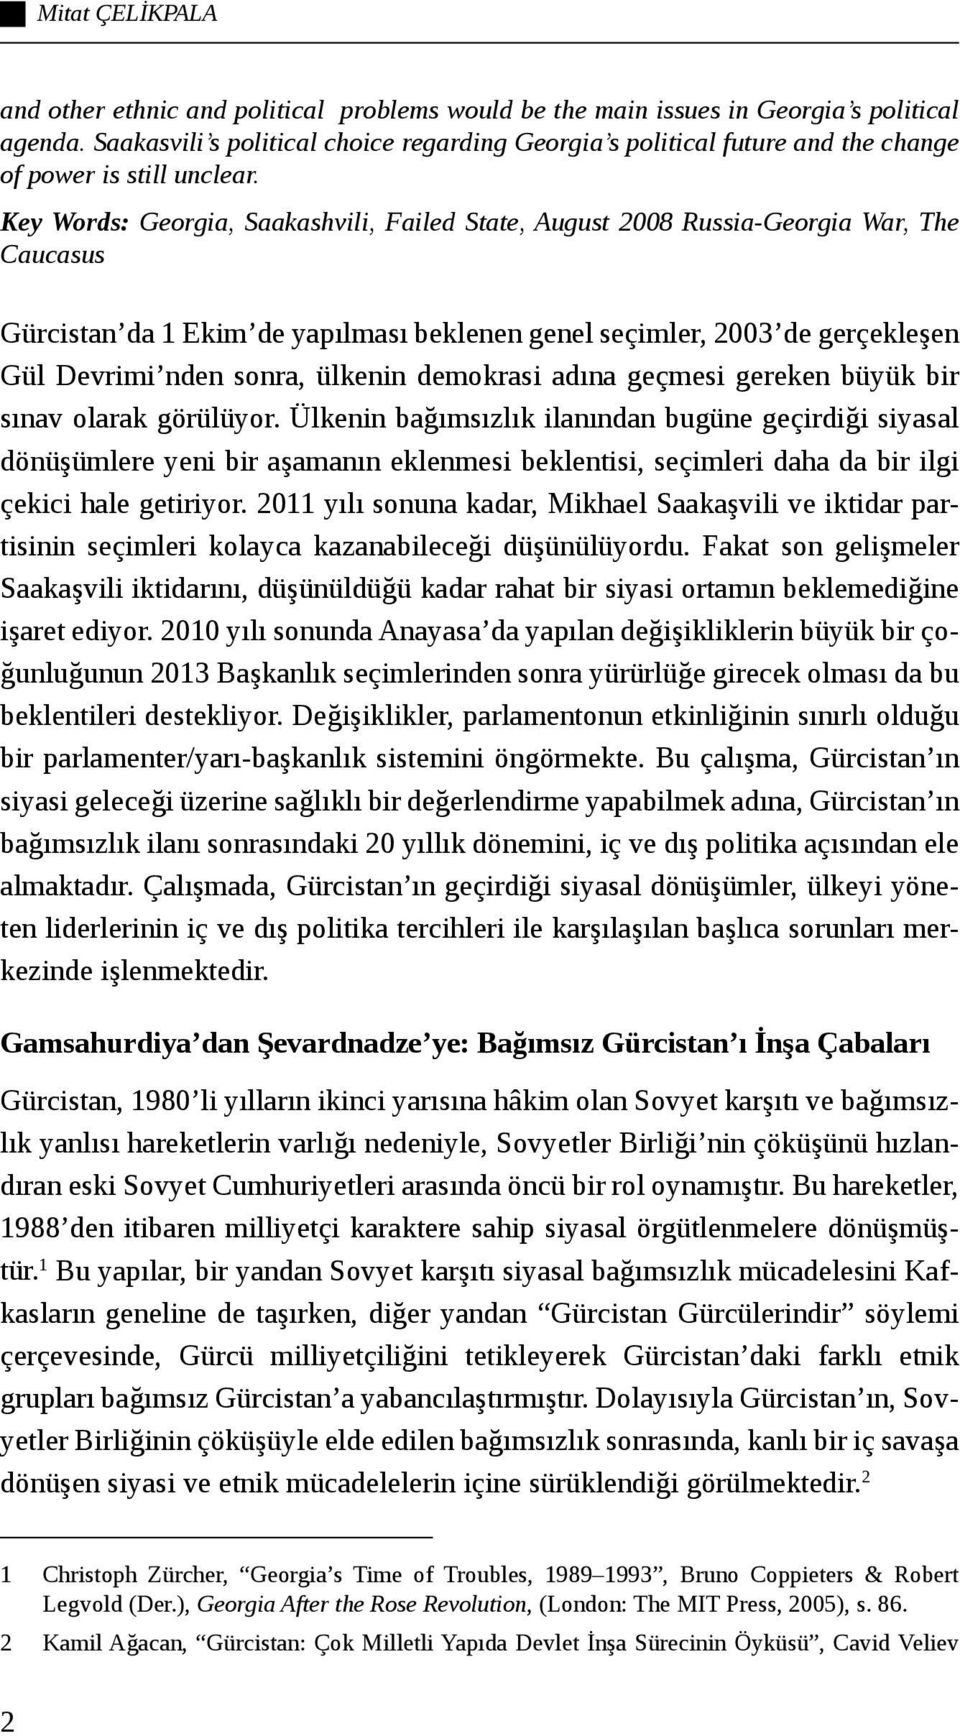 Key Words: Georgia, Saakashvili, Failed State, August 2008 Russia-Georgia War, The Caucasus Gürcistan da 1 Ekim de yapılması beklenen genel seçimler, 2003 de gerçekleşen Gül Devrimi nden sonra,